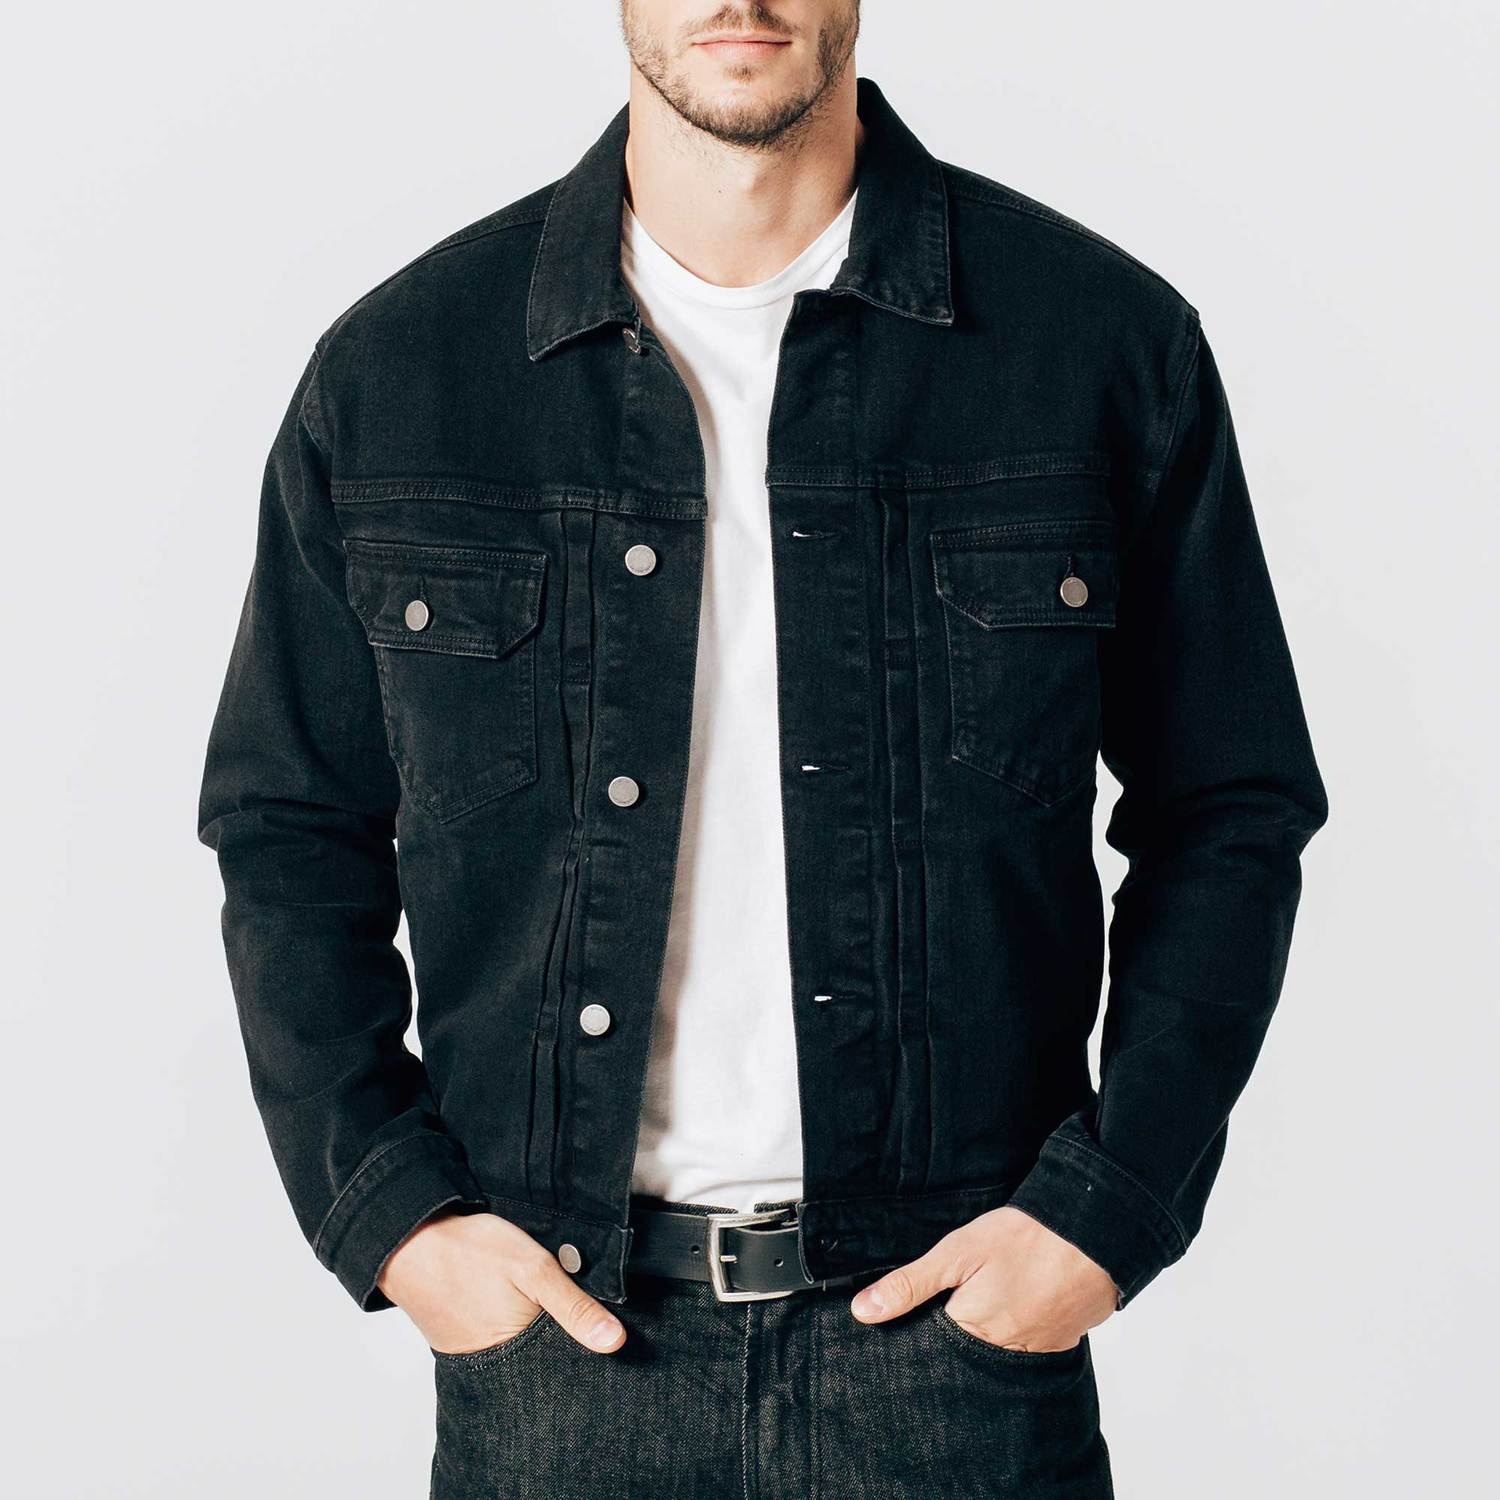 denim jackets for men mens denim jacket in worn black LQSEFAC